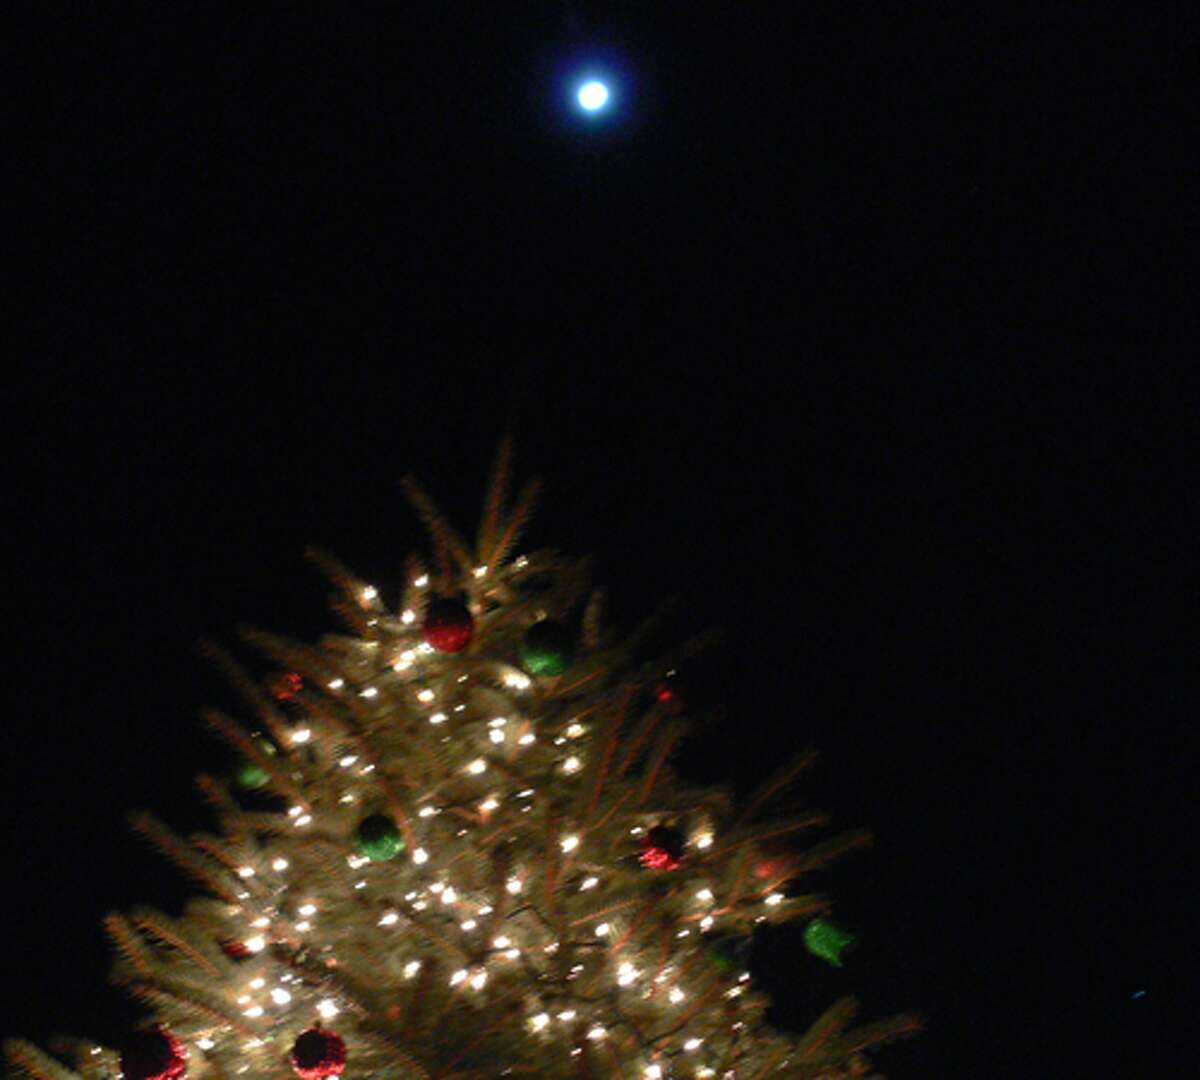 A view of the lit tree on late Sunday night, with a full moon visible above it in the sky.